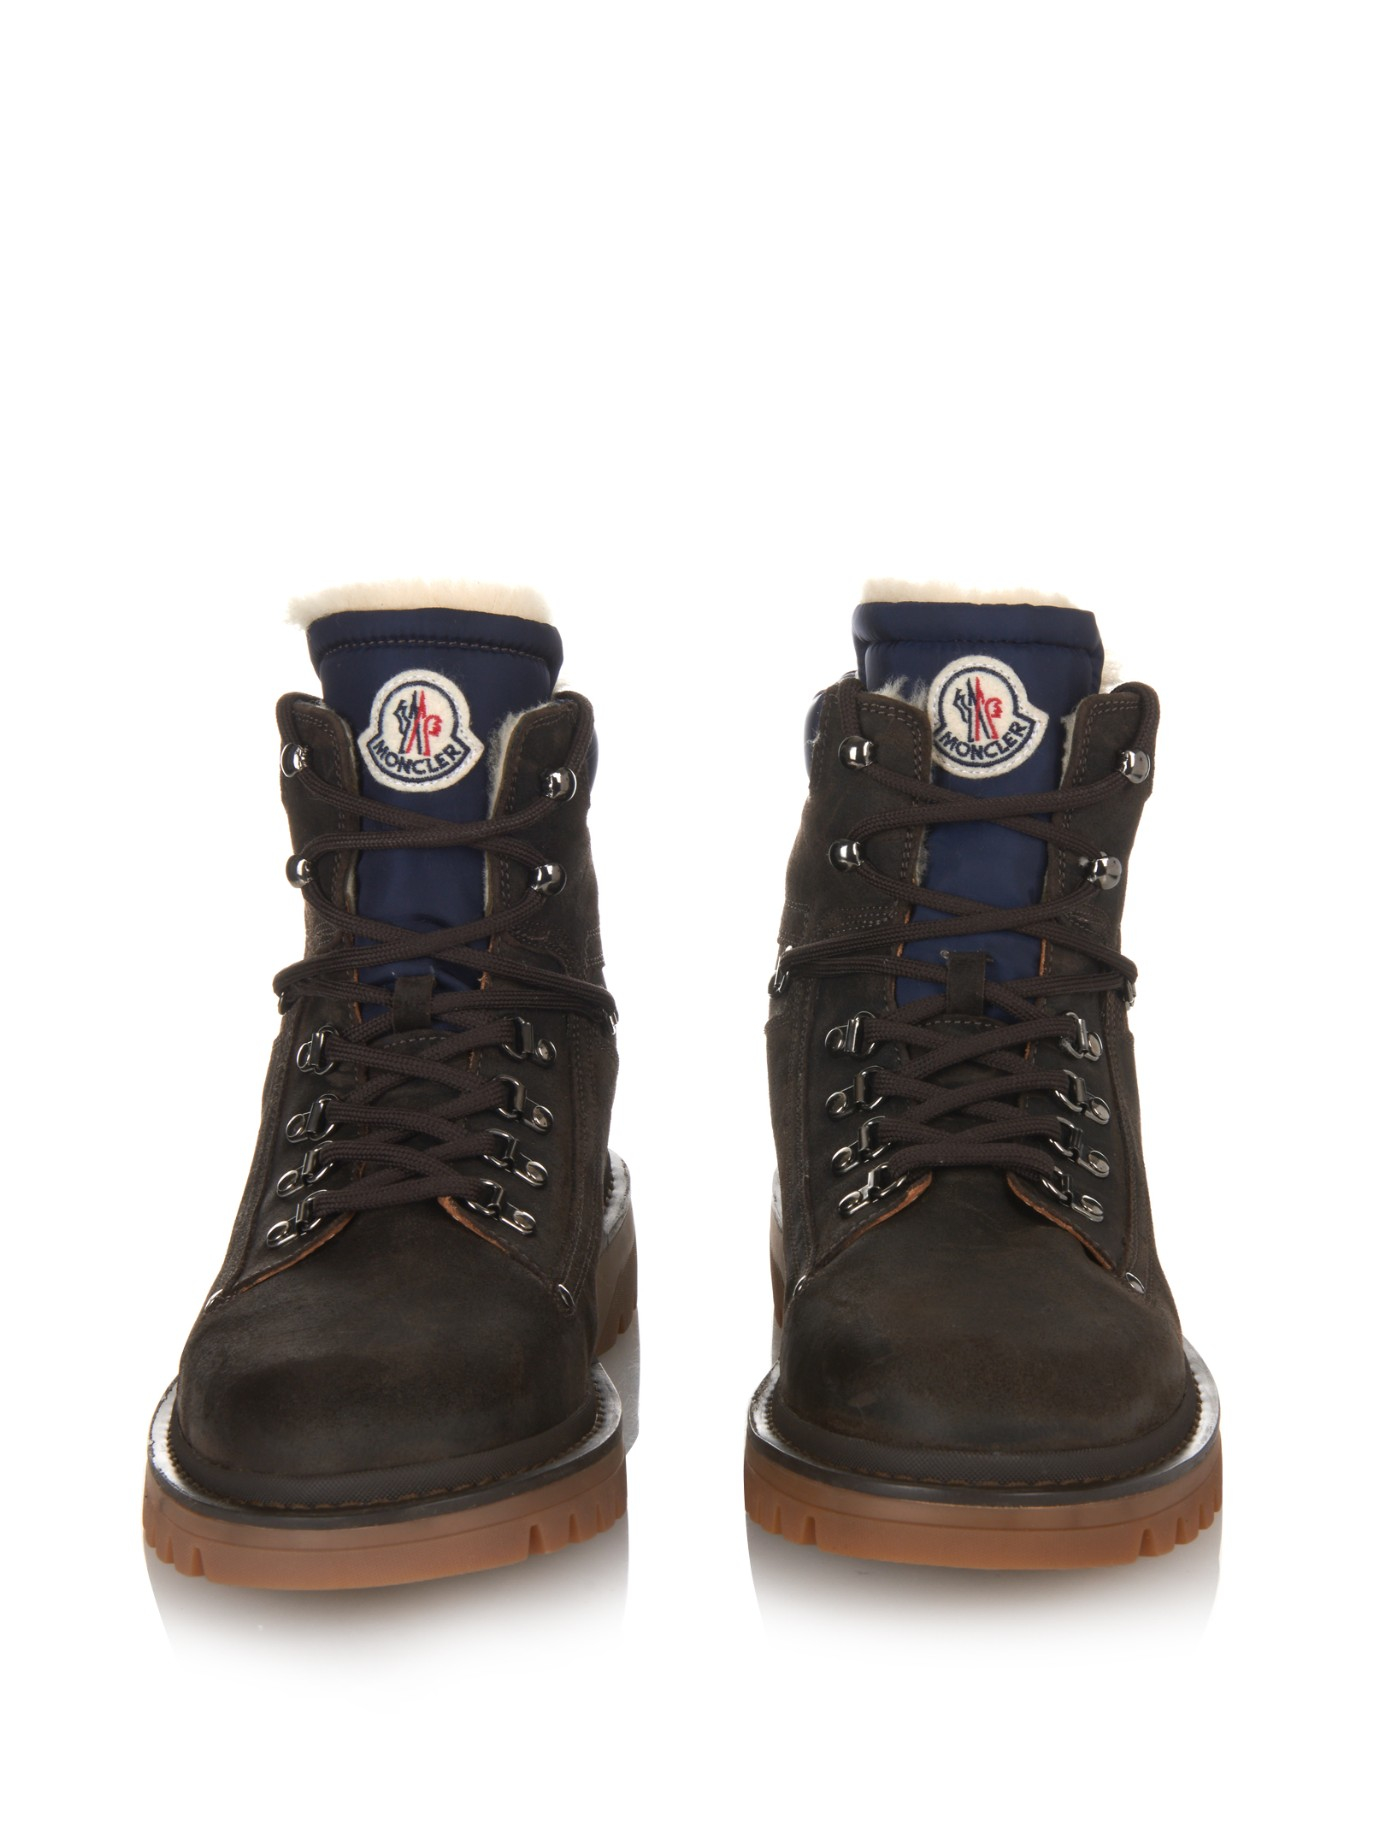 moncler shoes and boots